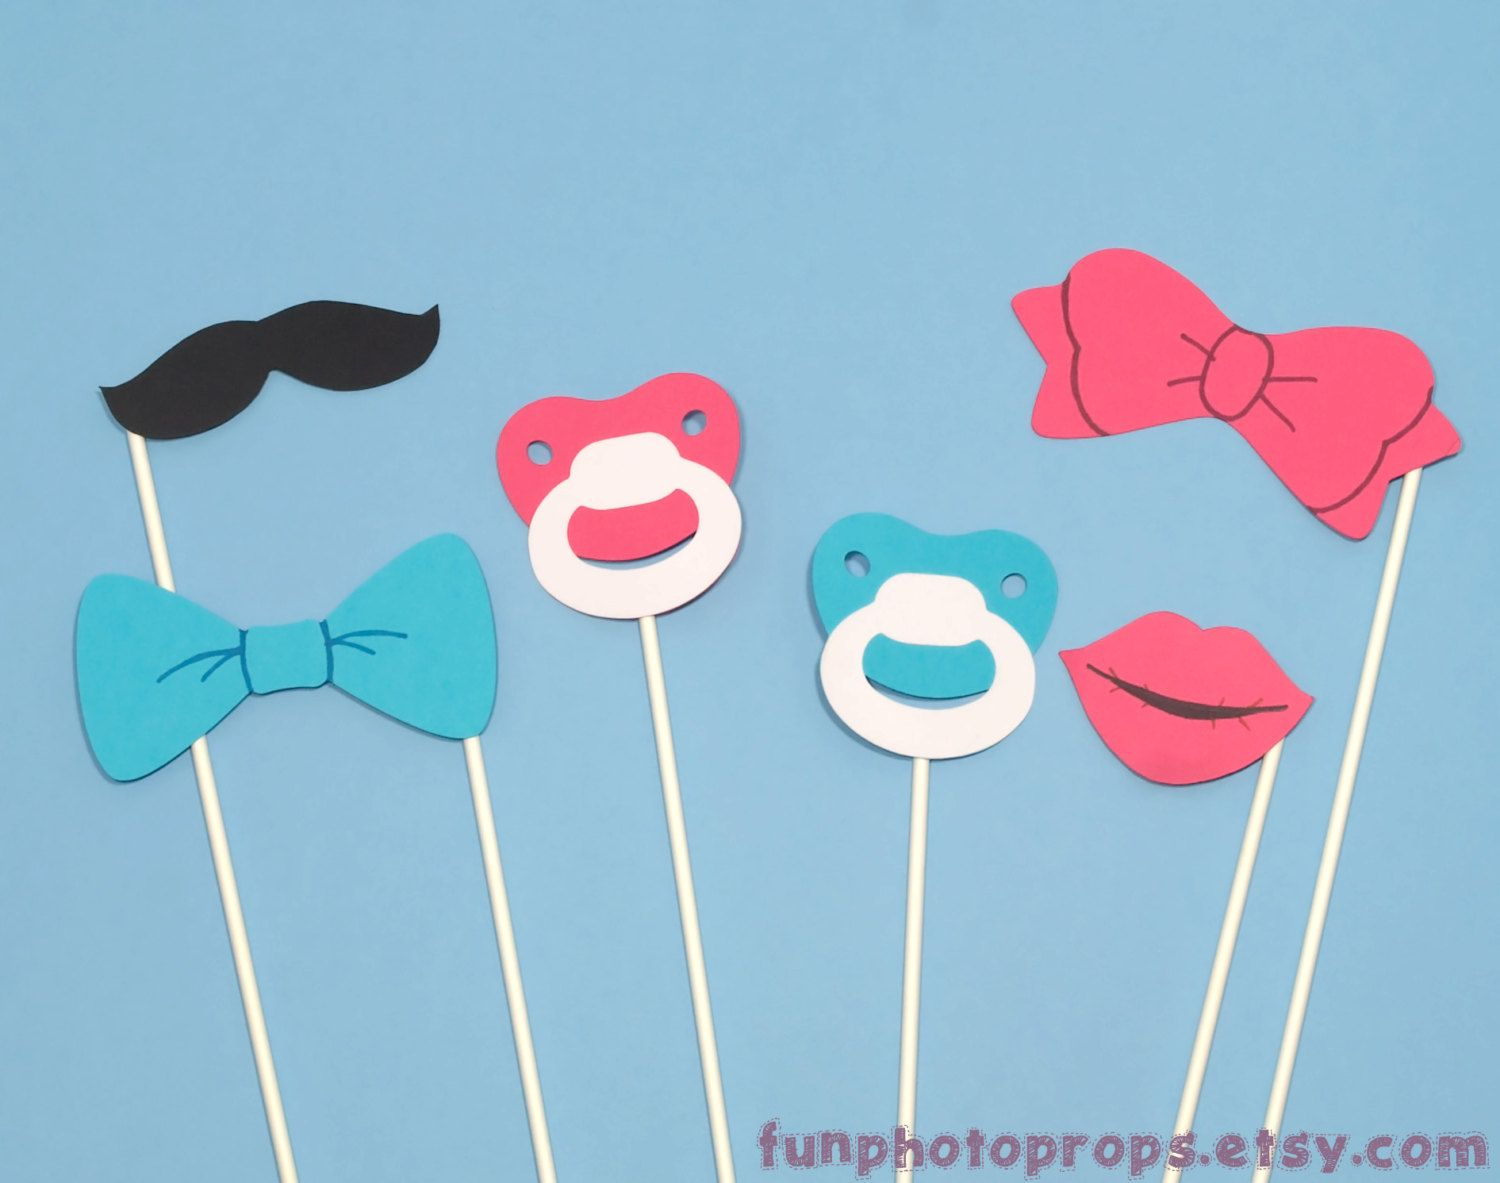 Photo Booth Prop Set 6 Piece Gender Reveal By Funphotoprops 1295